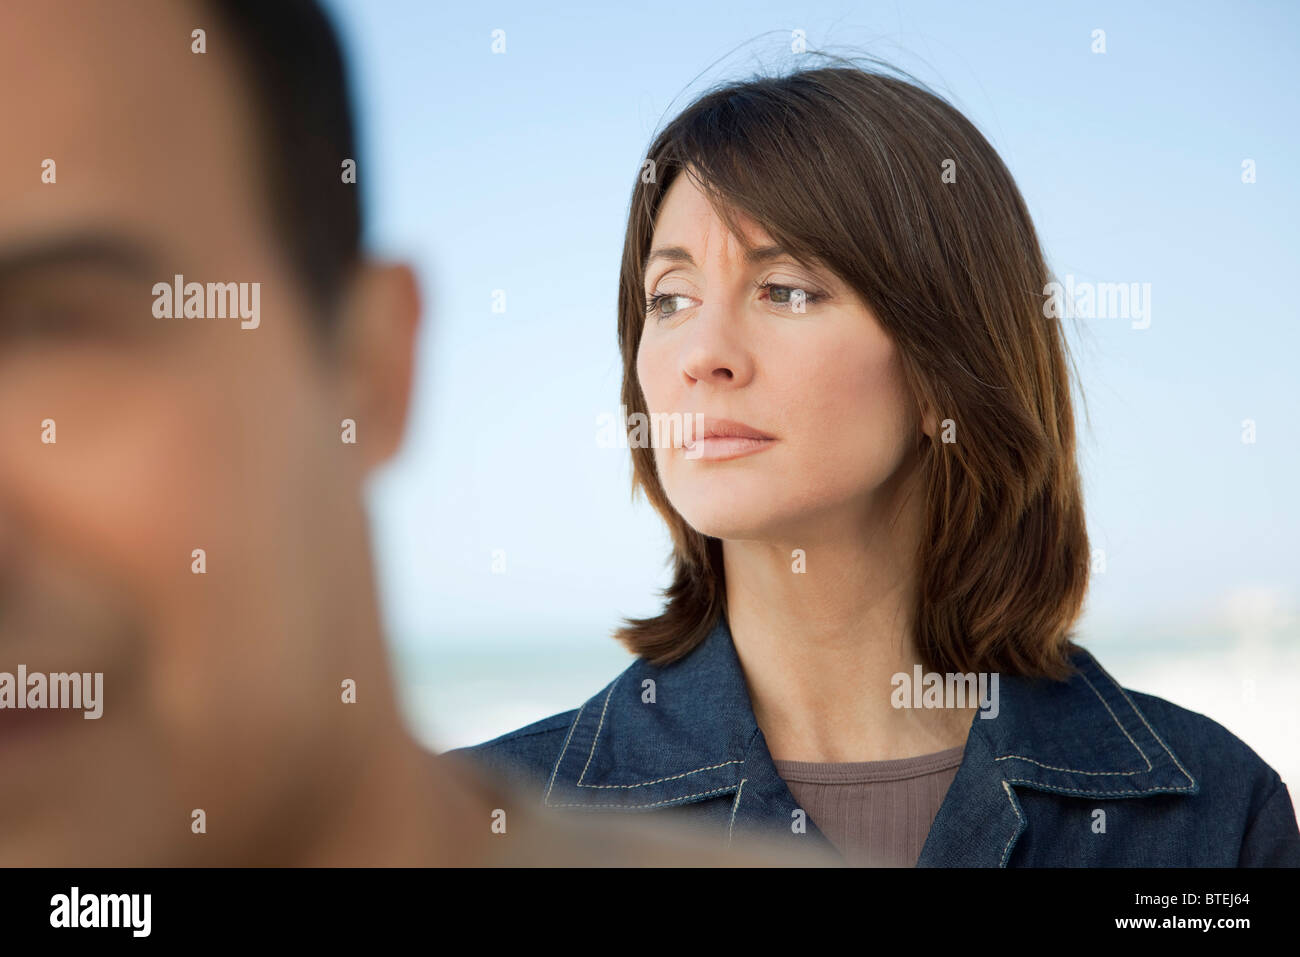 Woman looking away with furrowed brow, man in foreground Stock Photo